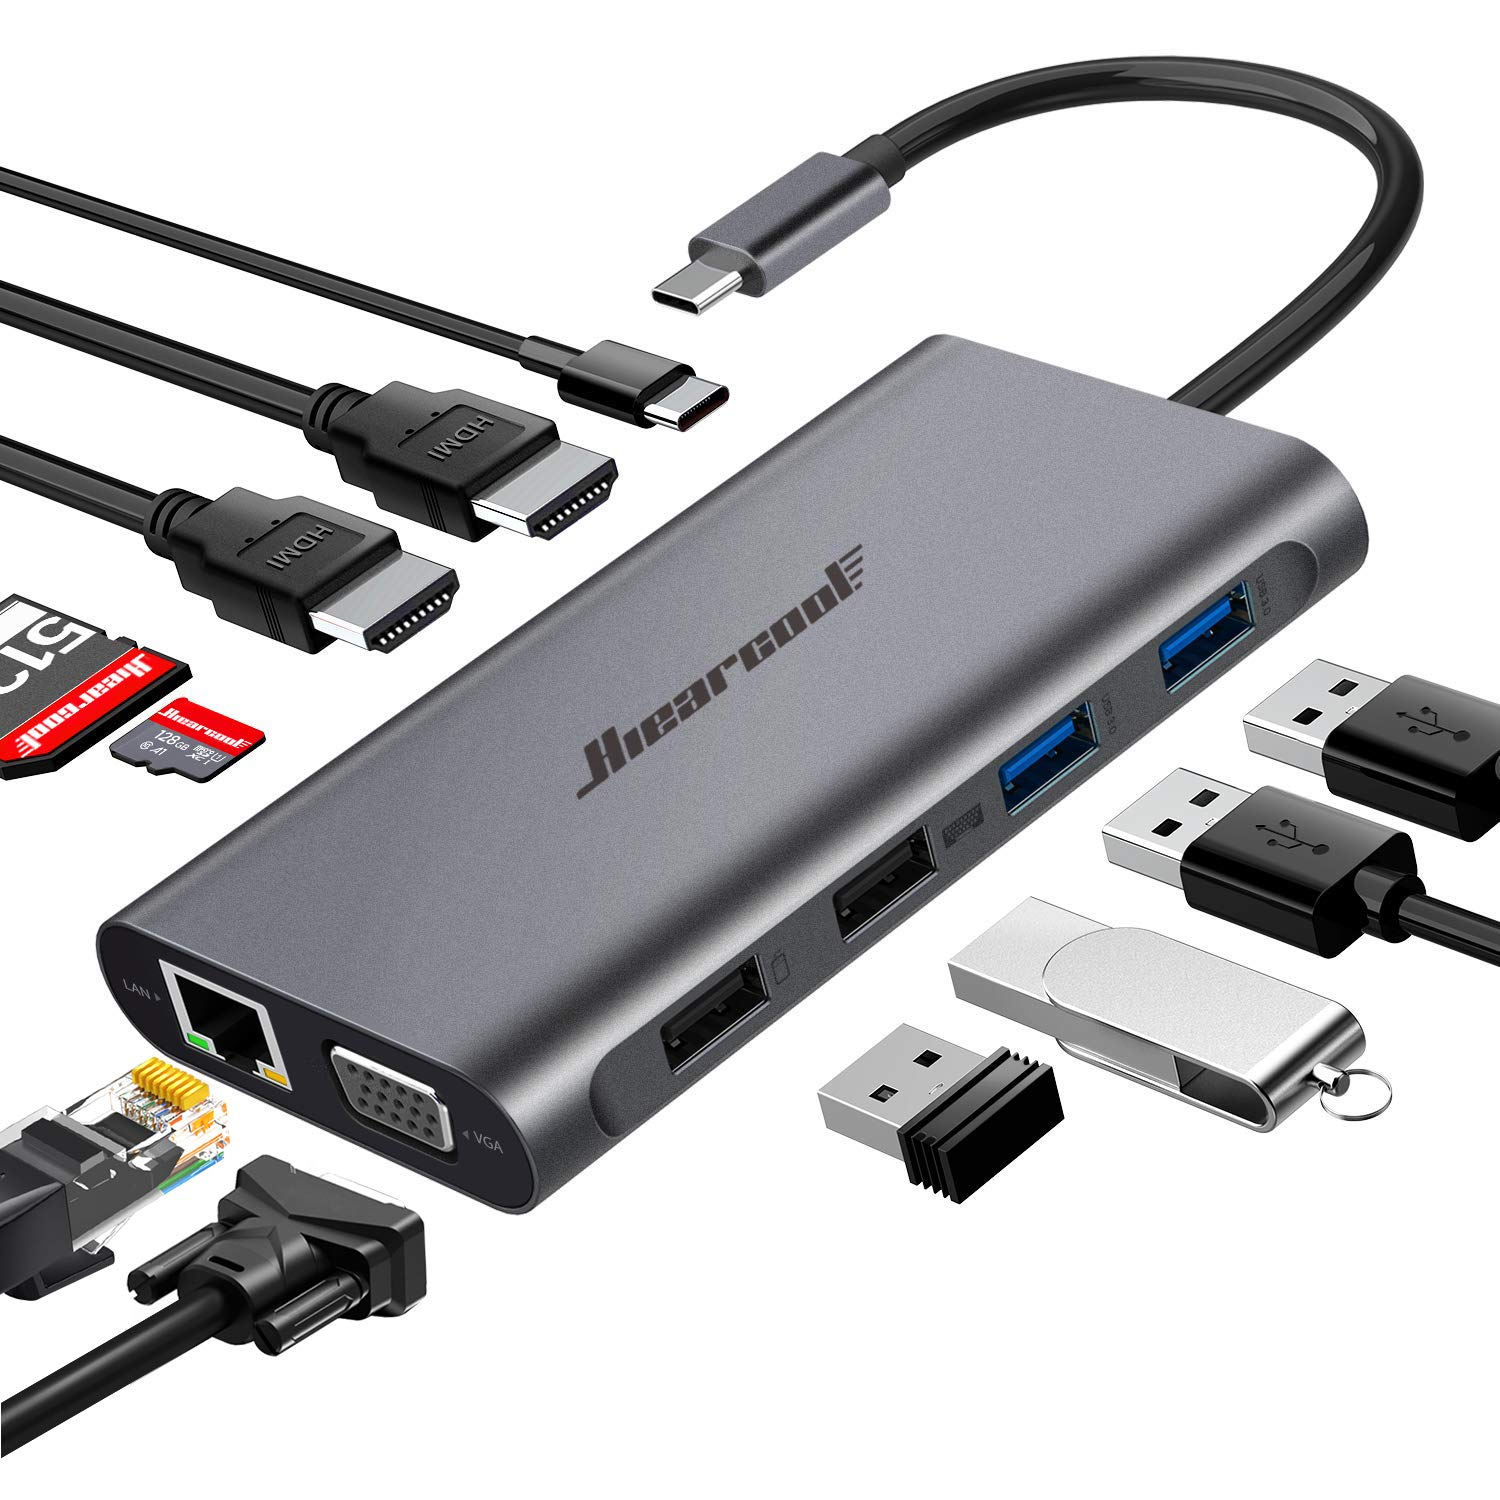 Hiearcool Laptop Thunderbolt Docking Station